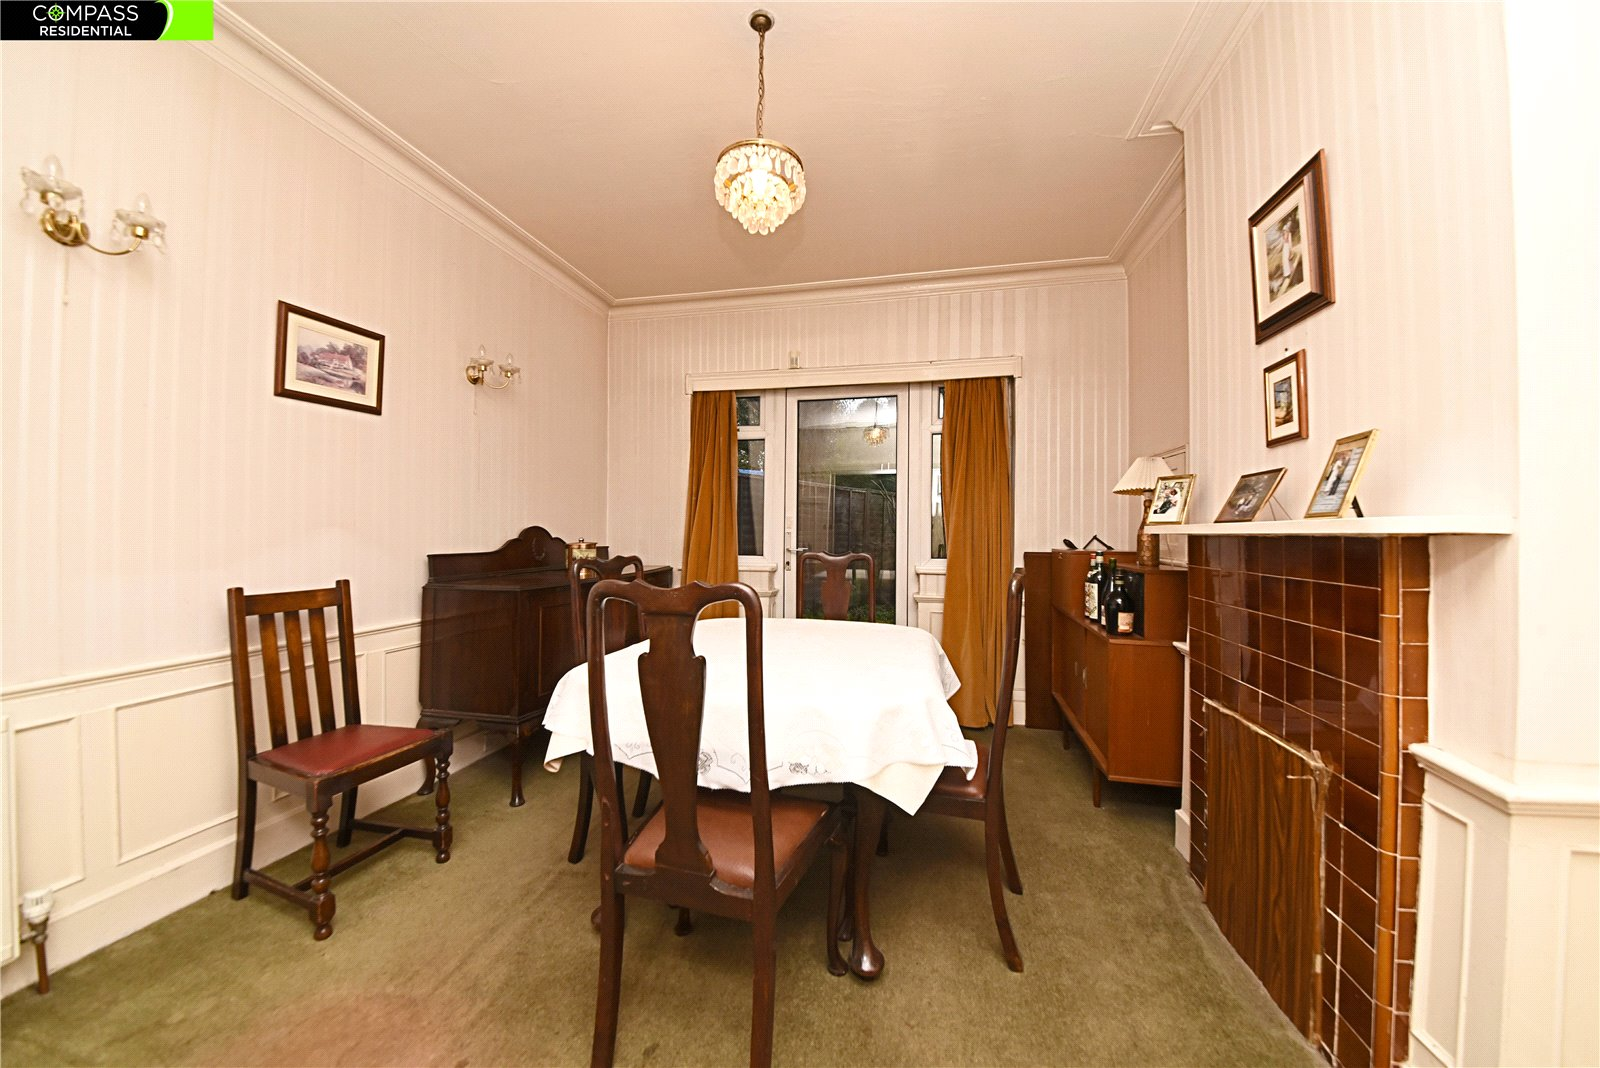 3 bed house for sale in Whetstone, N20 9PT  - Property Image 3